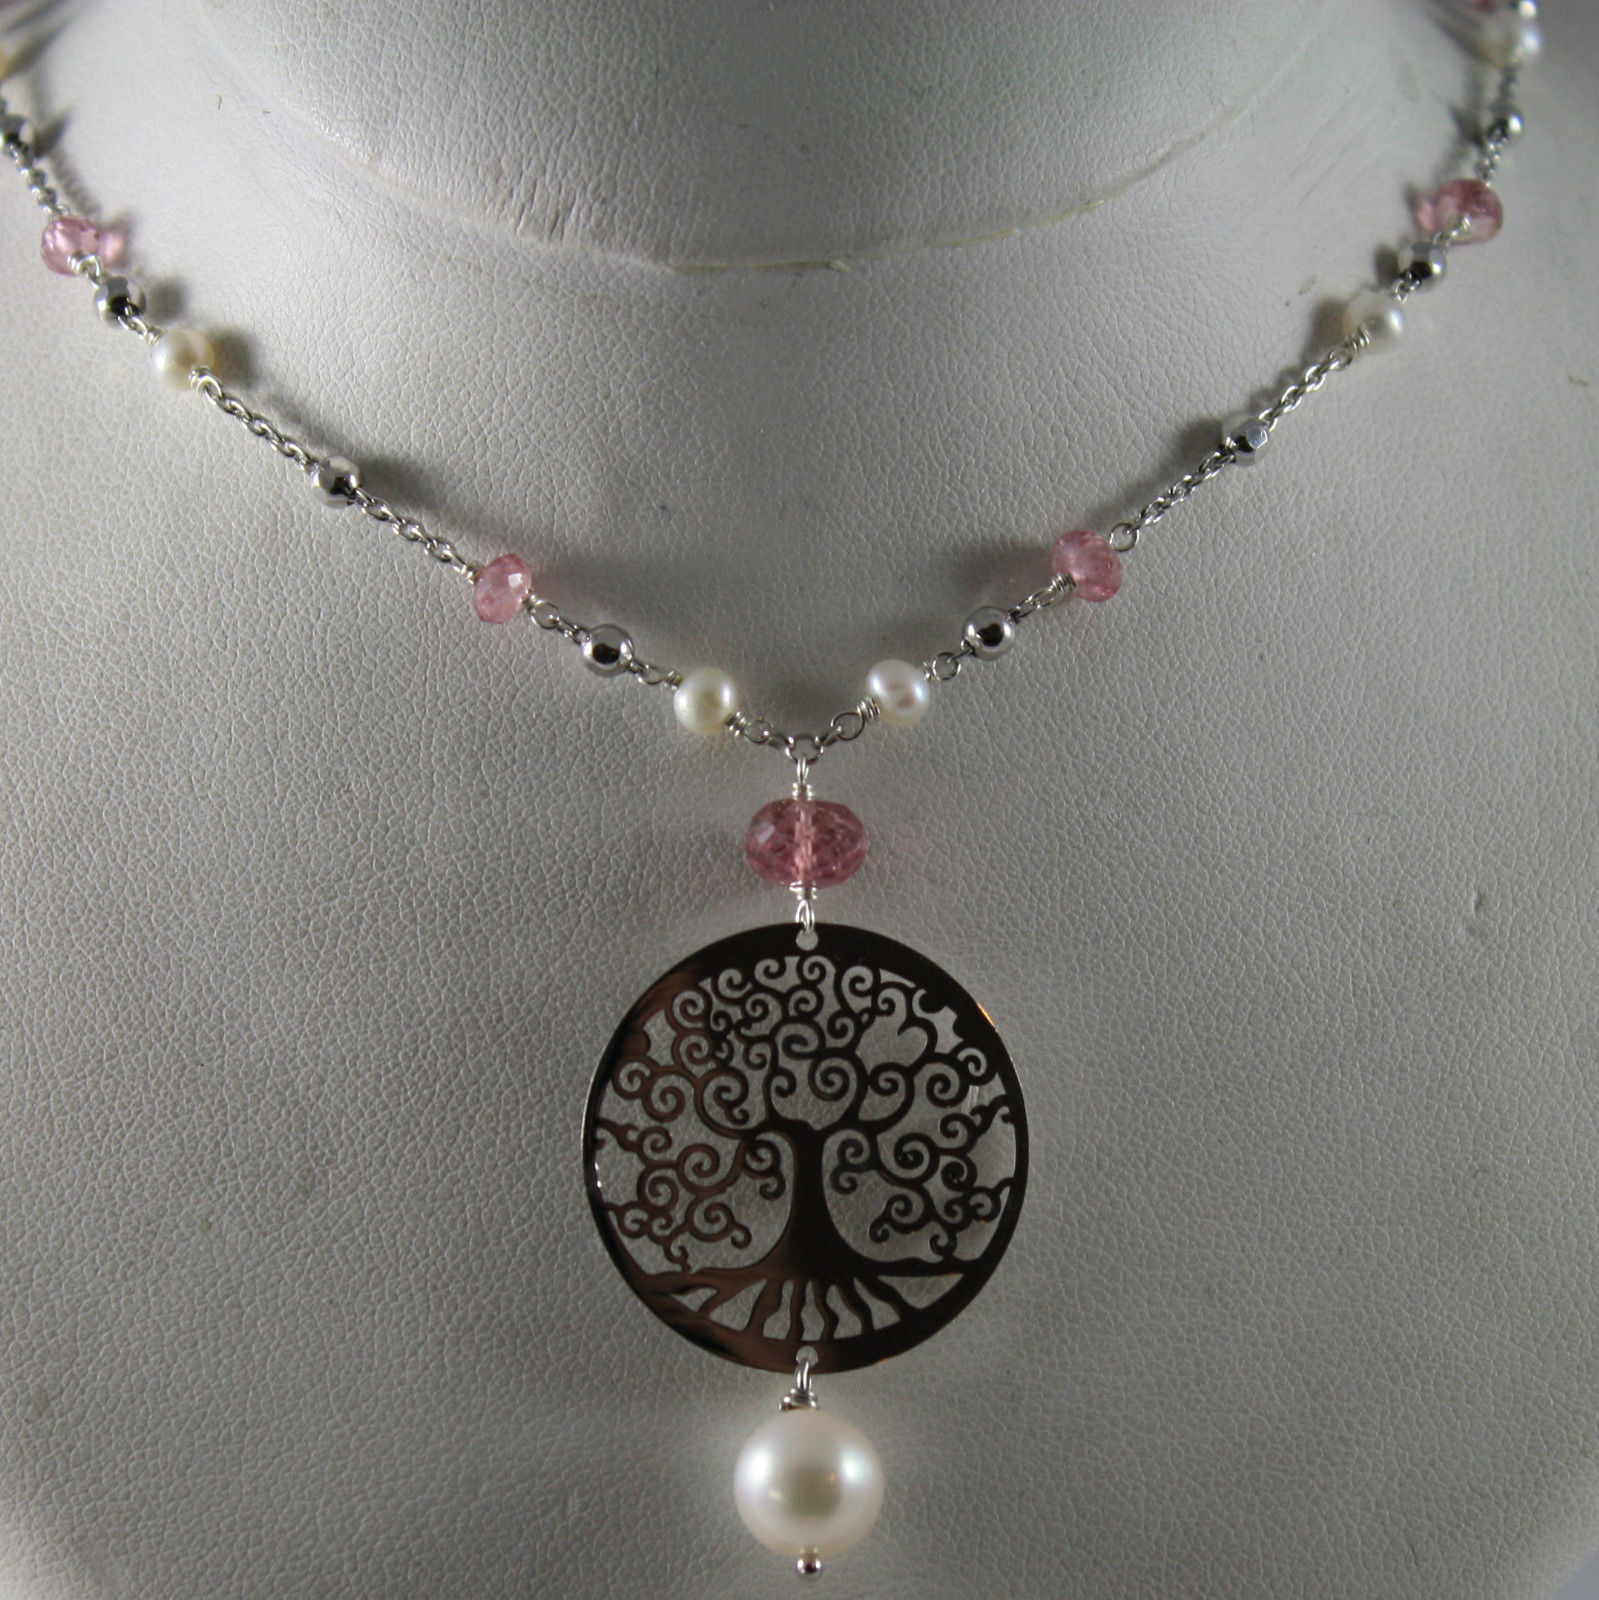 .925 SILVER RHODIUM NECKLACE WITH PINK TOURMALINE, FW PEARLS AND TREE OF LIFE